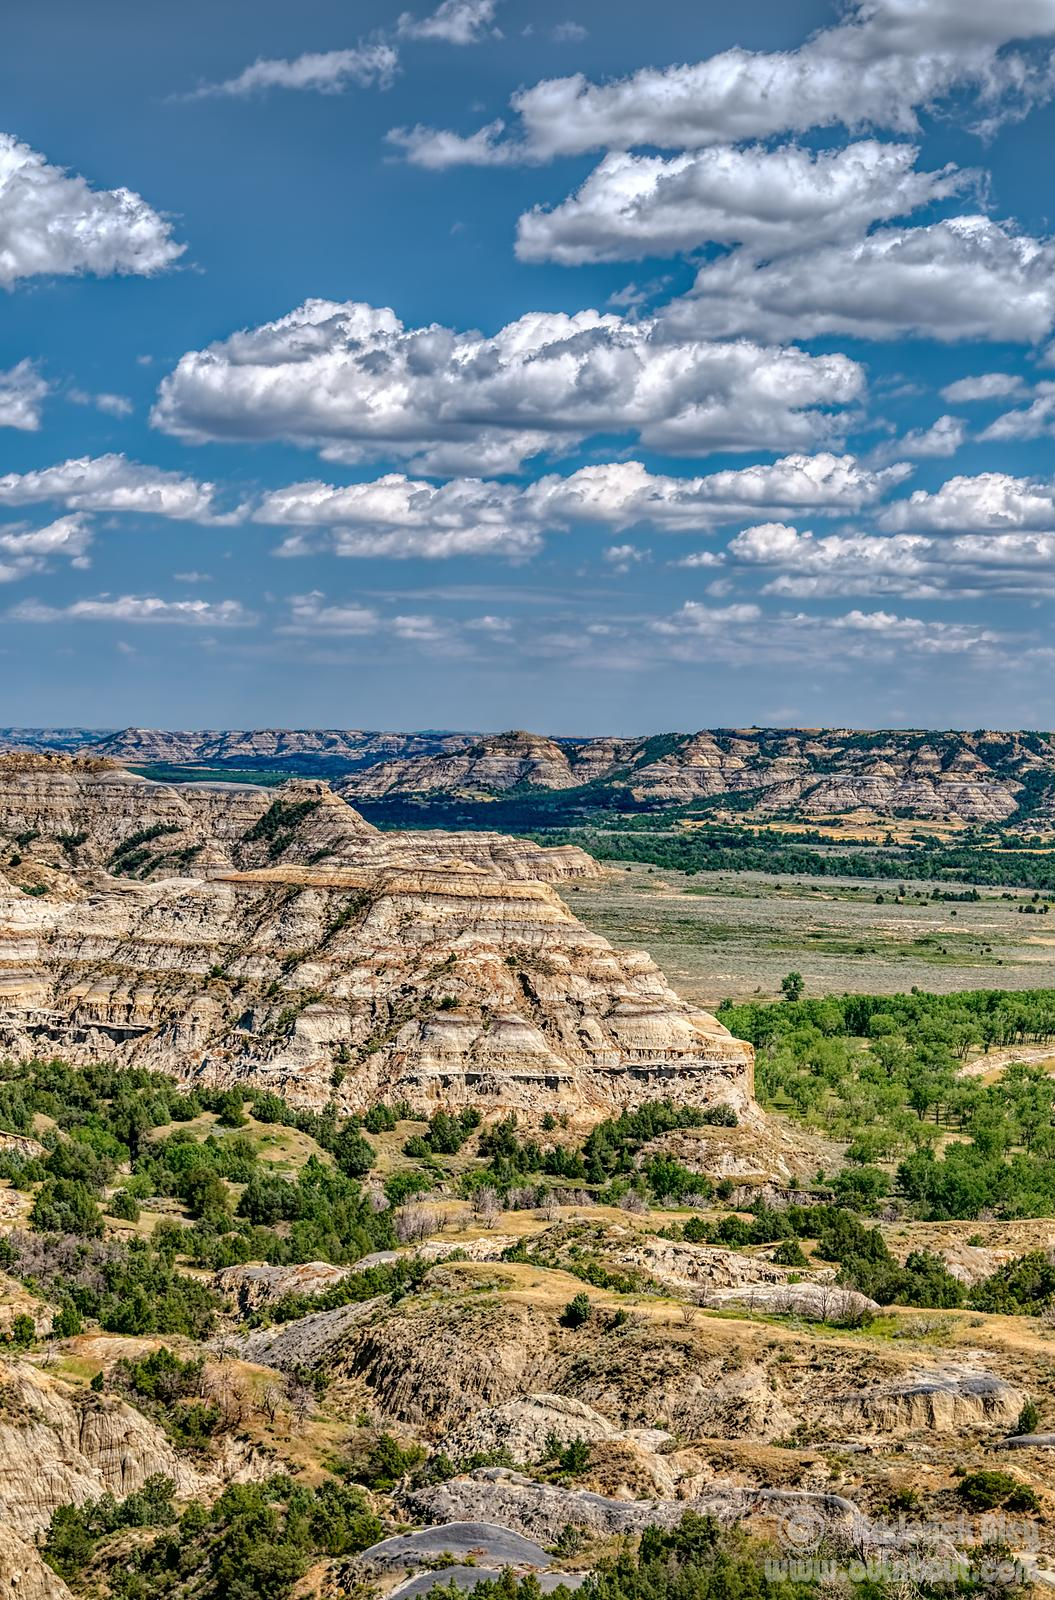 Badlands View from River Bend Overlook